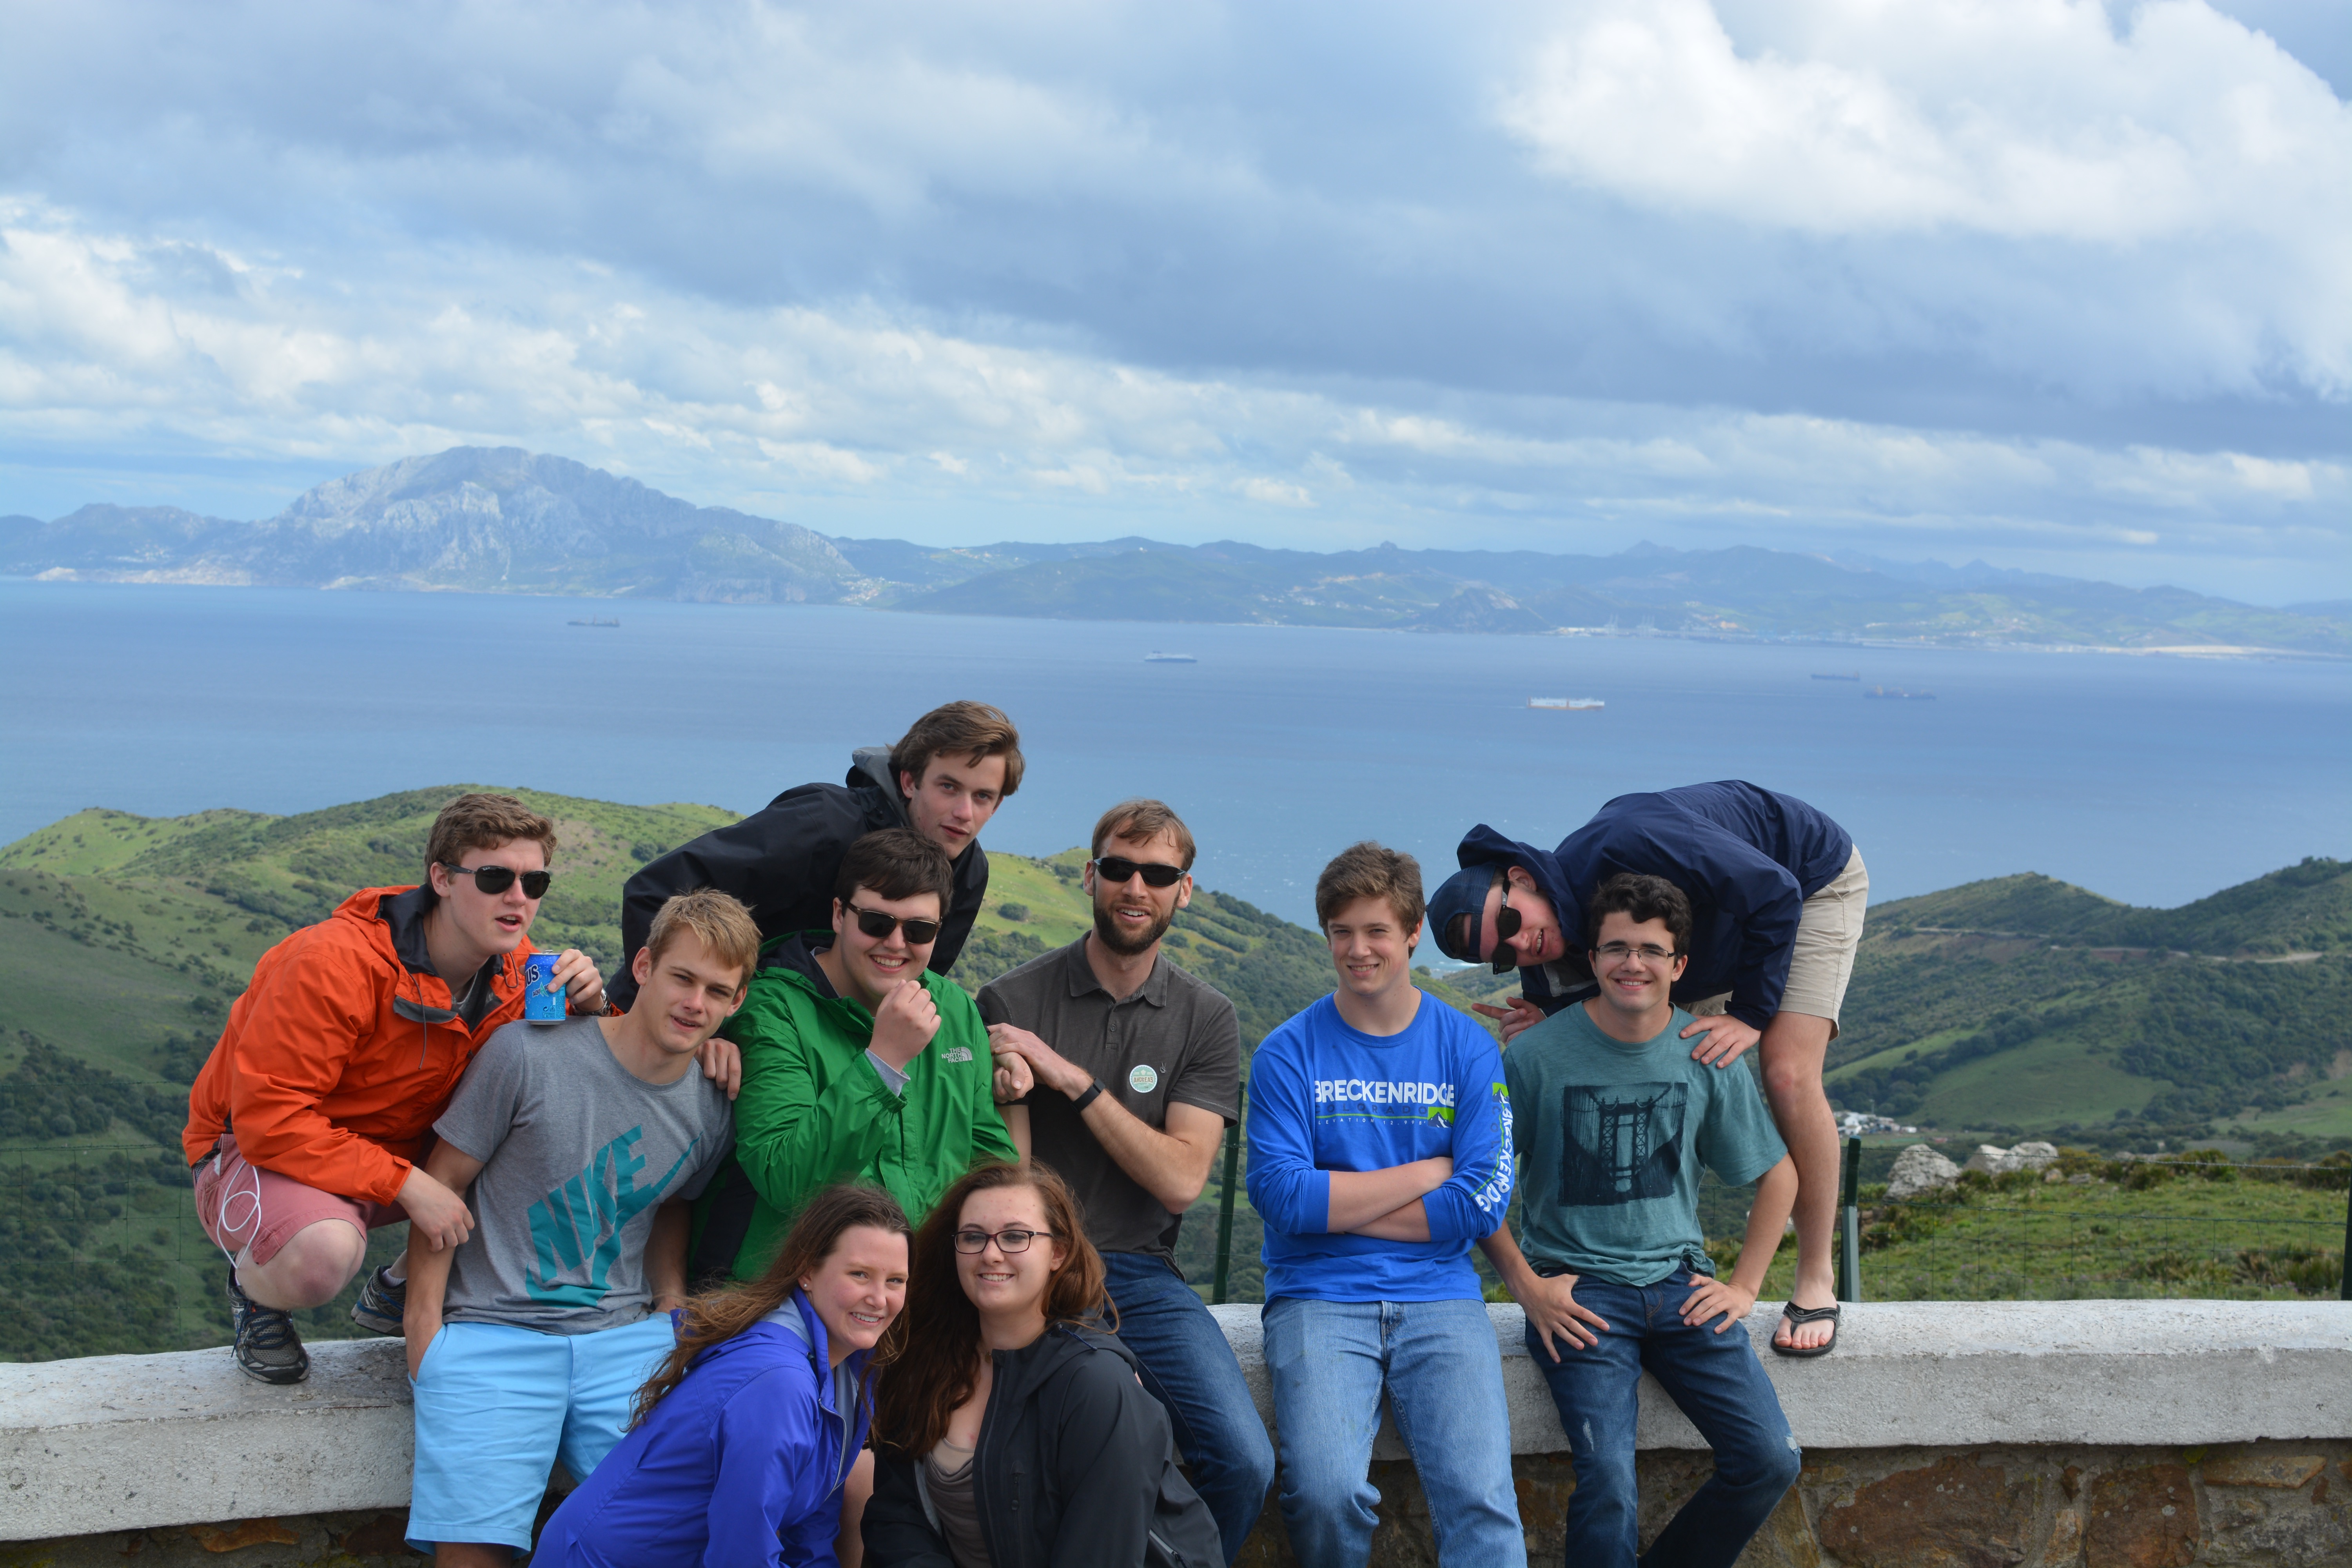 Proctor en Segovia gazes out at the Strait of Gibraltar and Morocco!